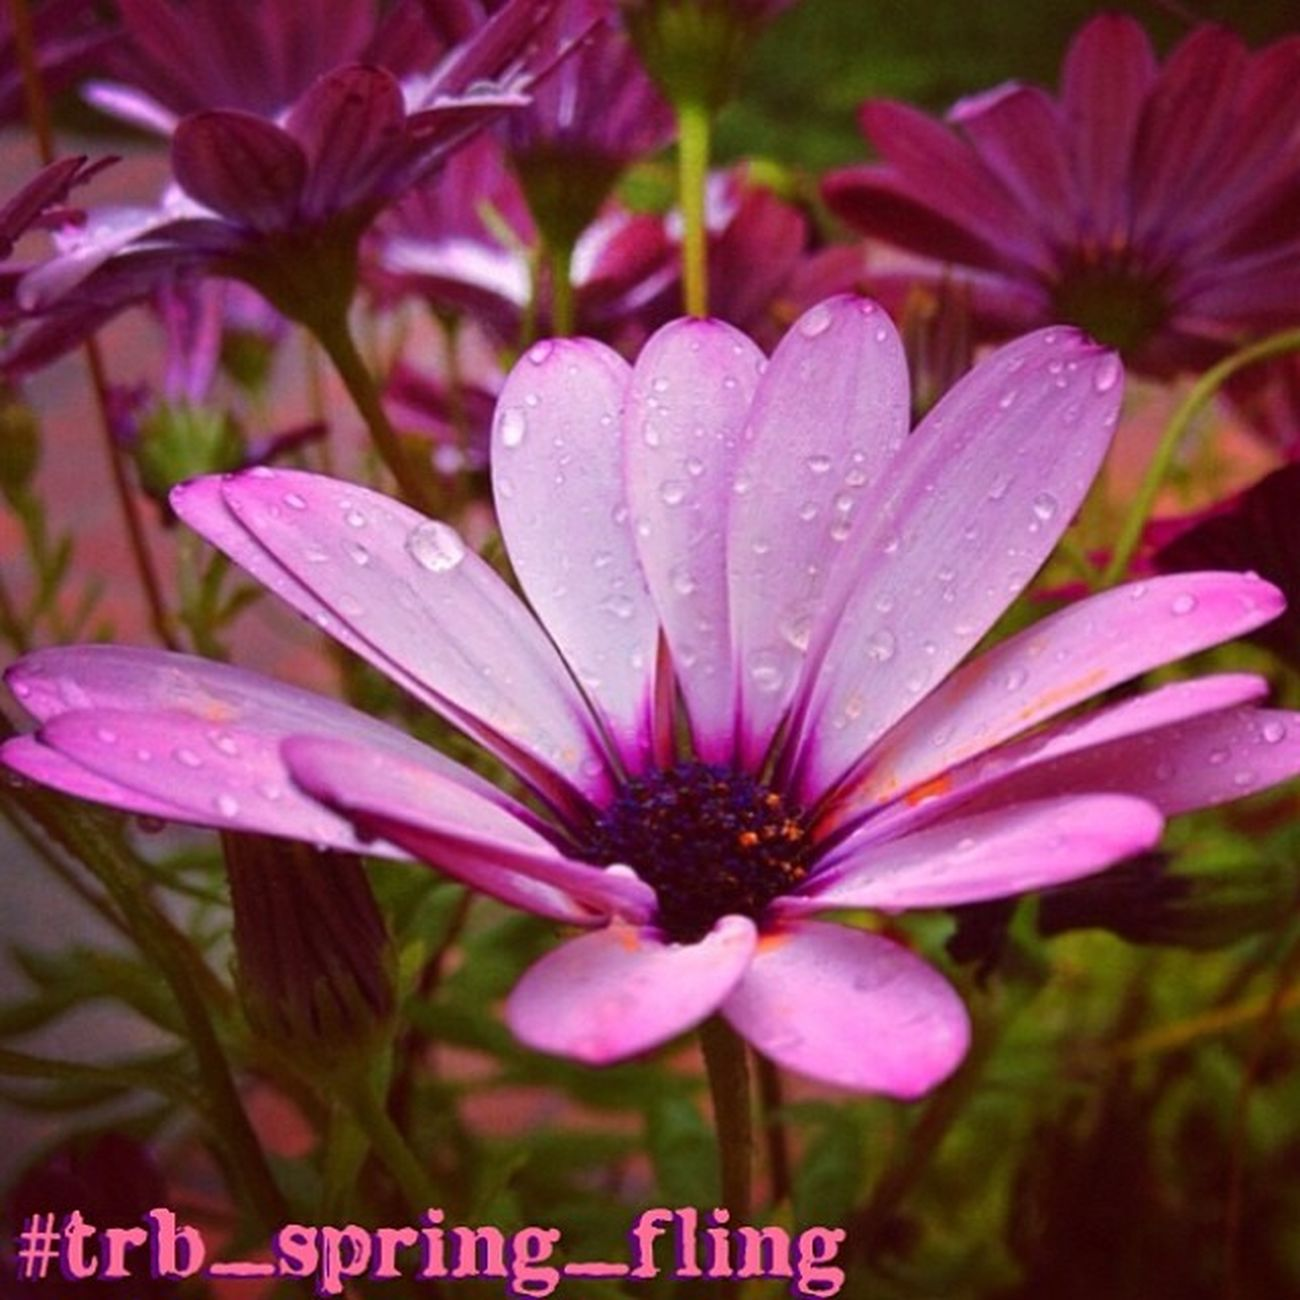 Trailblazers! Due to problems with pics going to tag pages, we are extending this weeks challenge #trb_spring_fling for another week.. Giving everyone a chance to enter their Spring theme pics! Spring is here and its time to celebrate the season.. Sprin Trailblazers_rurex Trb_spring_fling